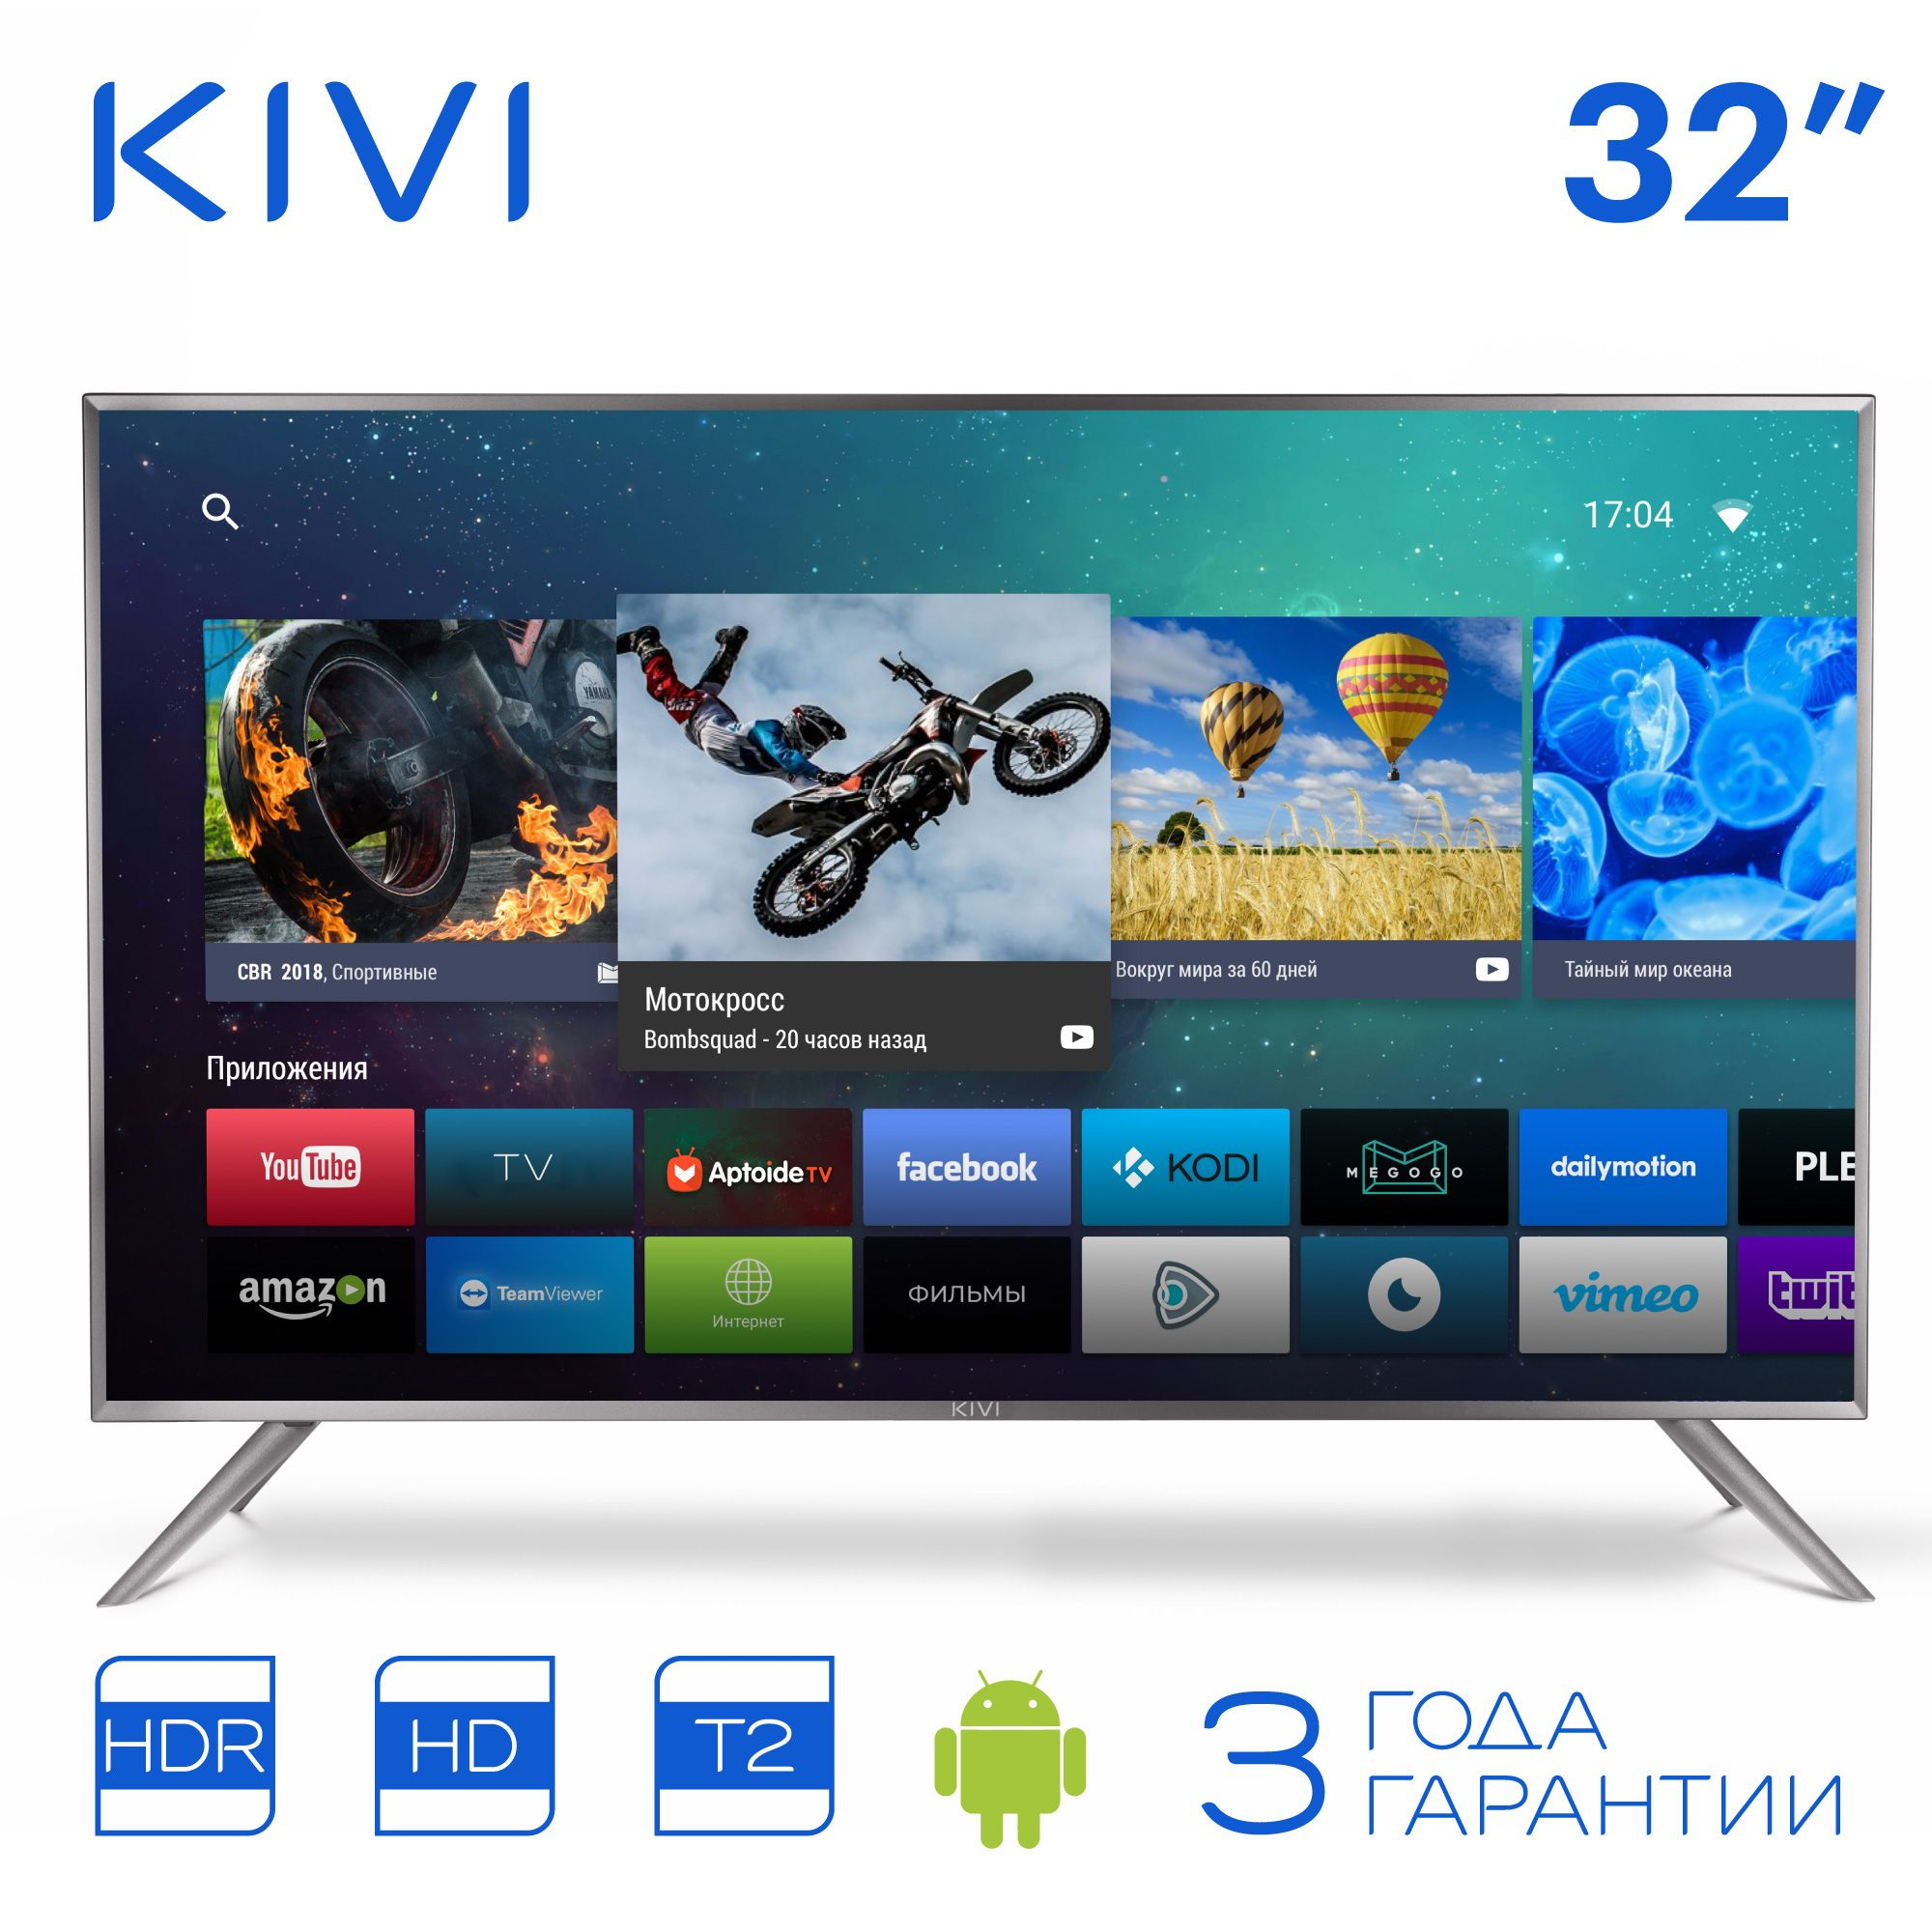 LED Fernsehen KIVI 32HR50GR HD Smart TV Android HDR 32inchTv digitale dvb dvb-t dvb-t2